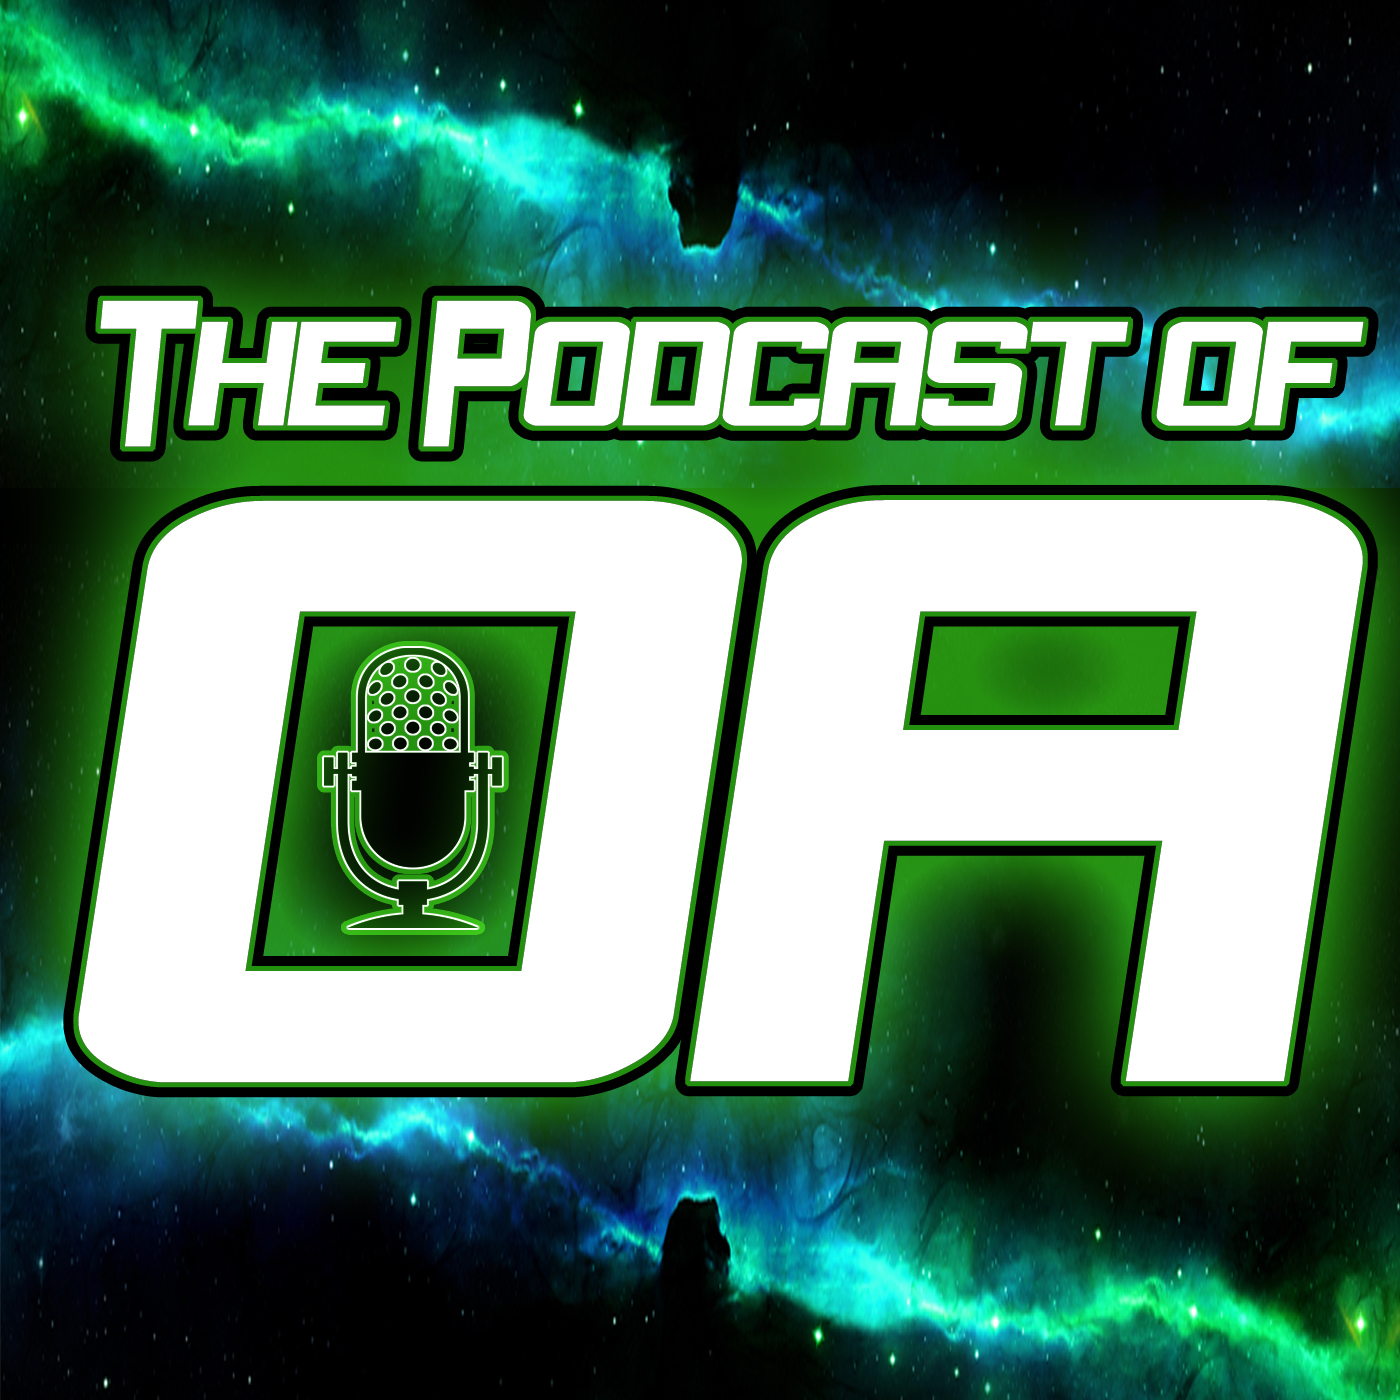 The Podcast of Oa: A Green Lantern Podcast show art